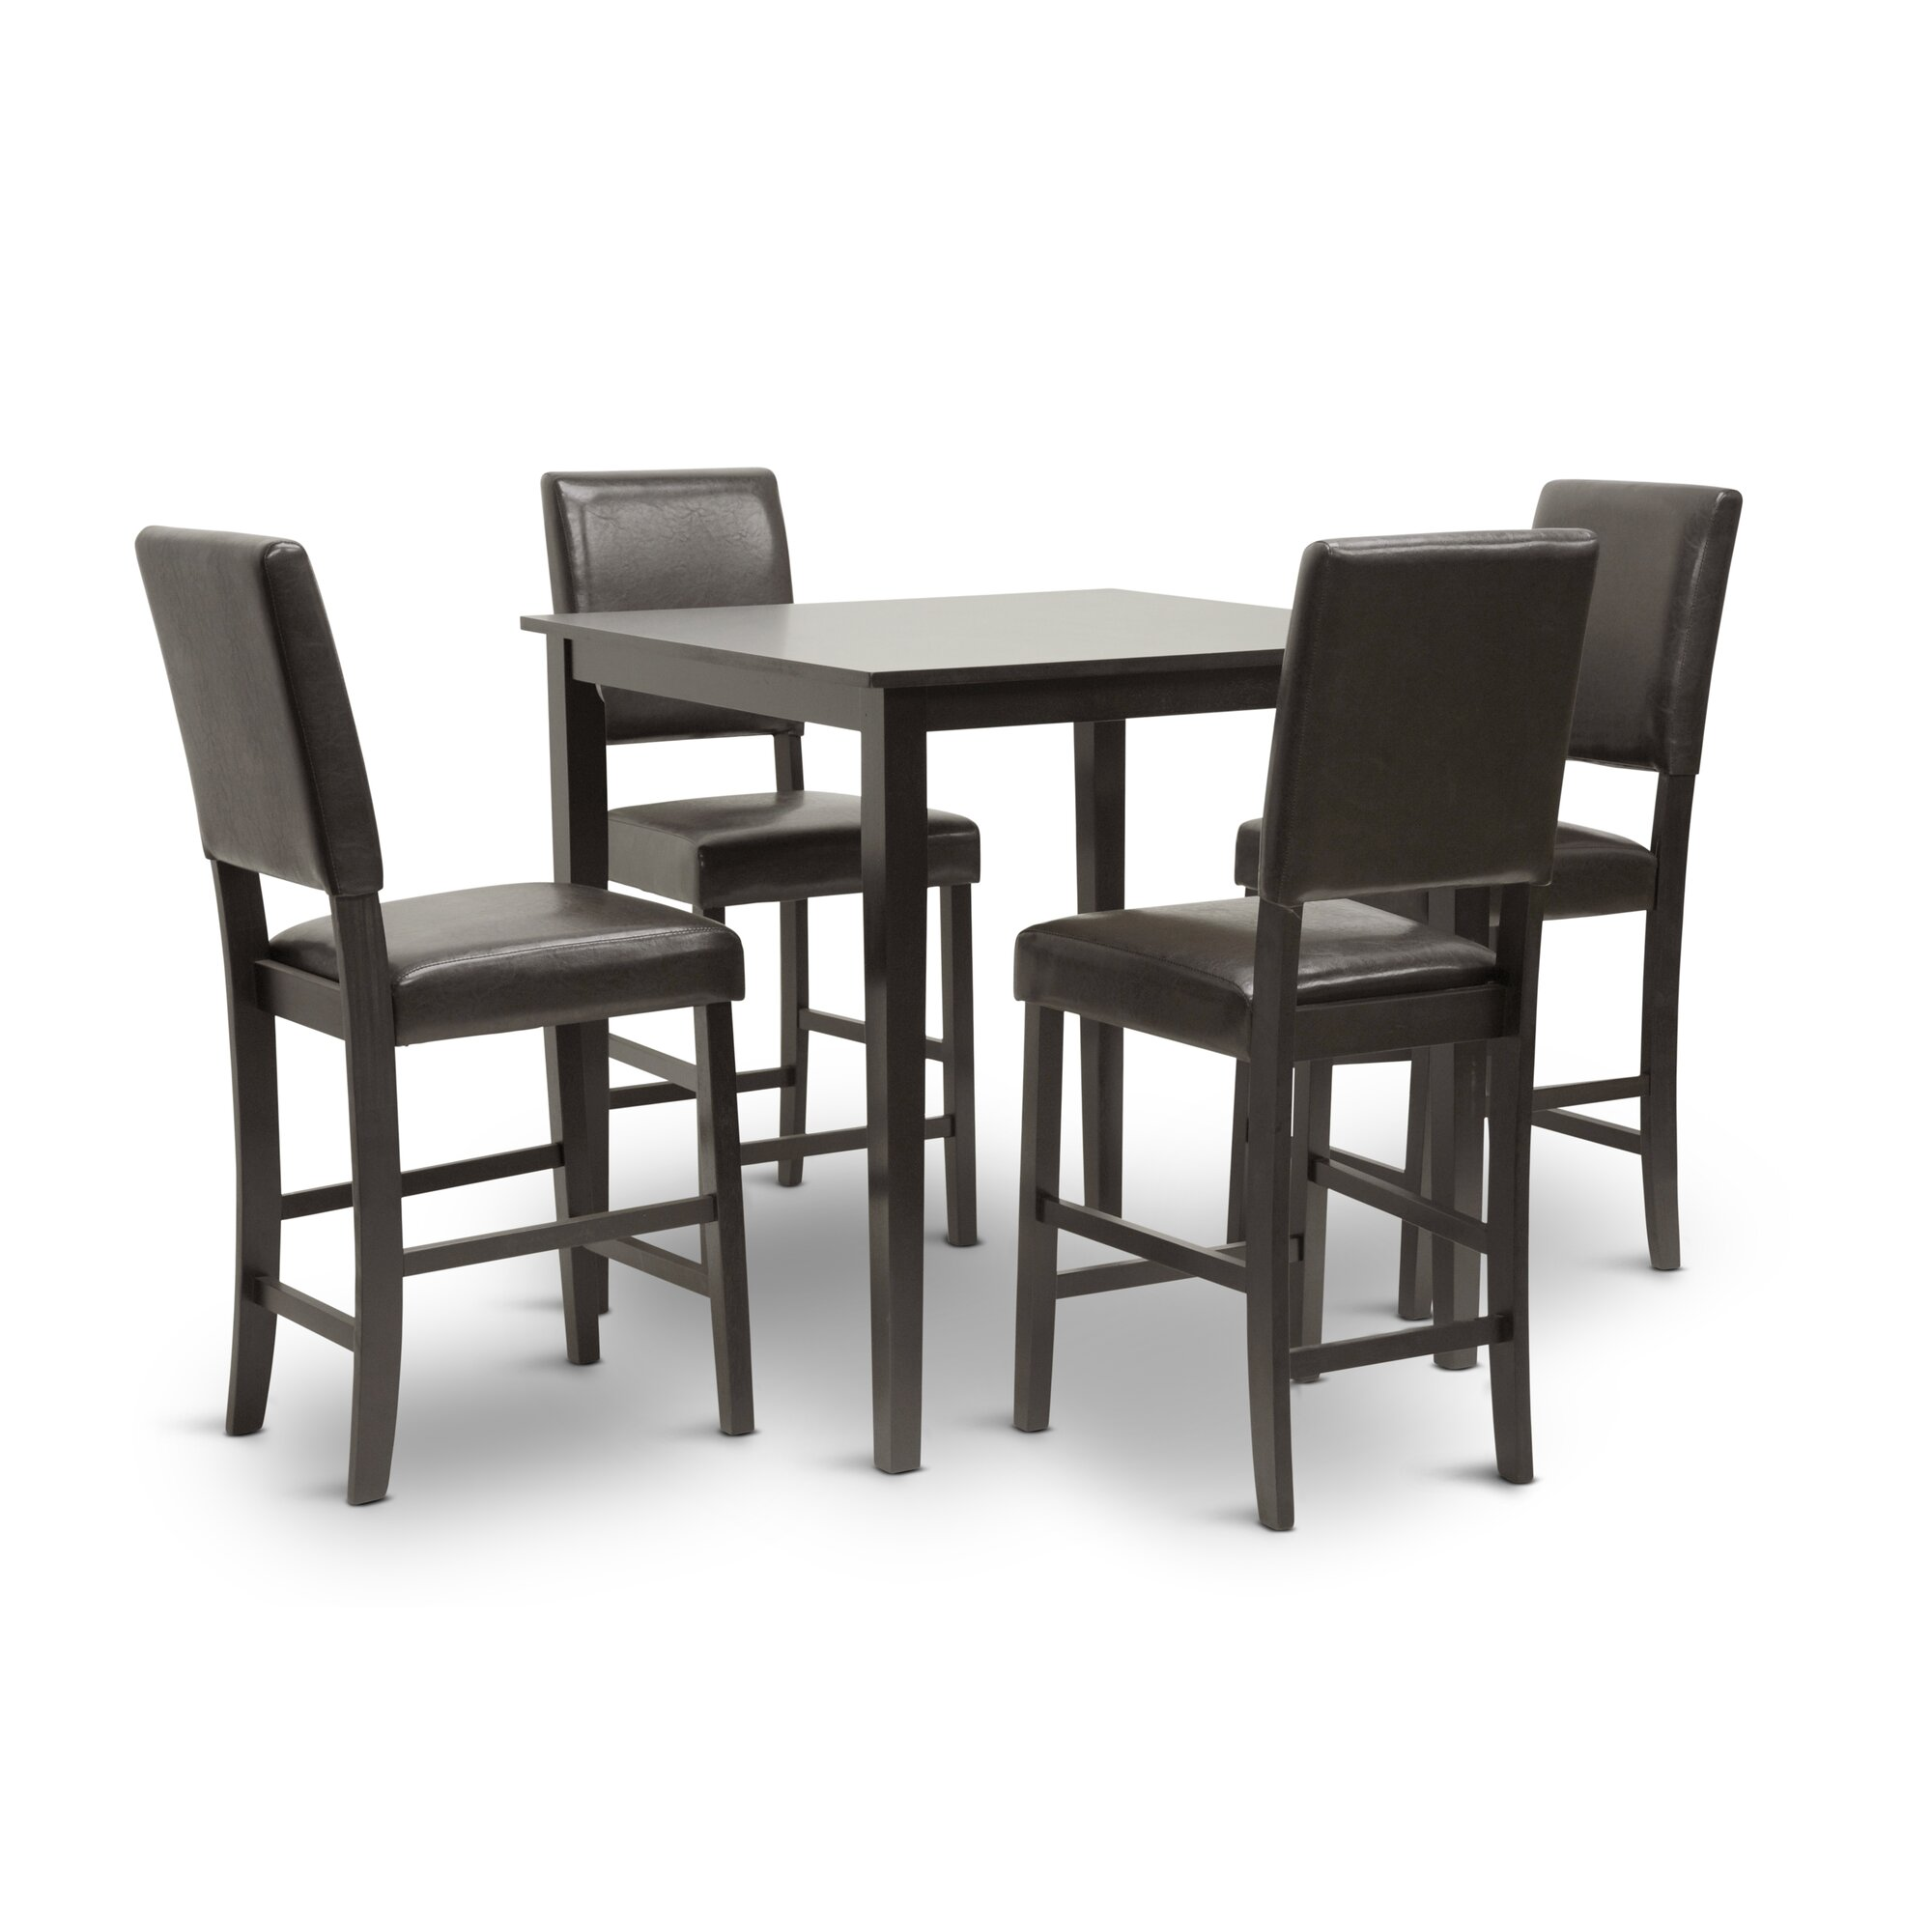 baxton studio 5 piece counter height dining set reviews